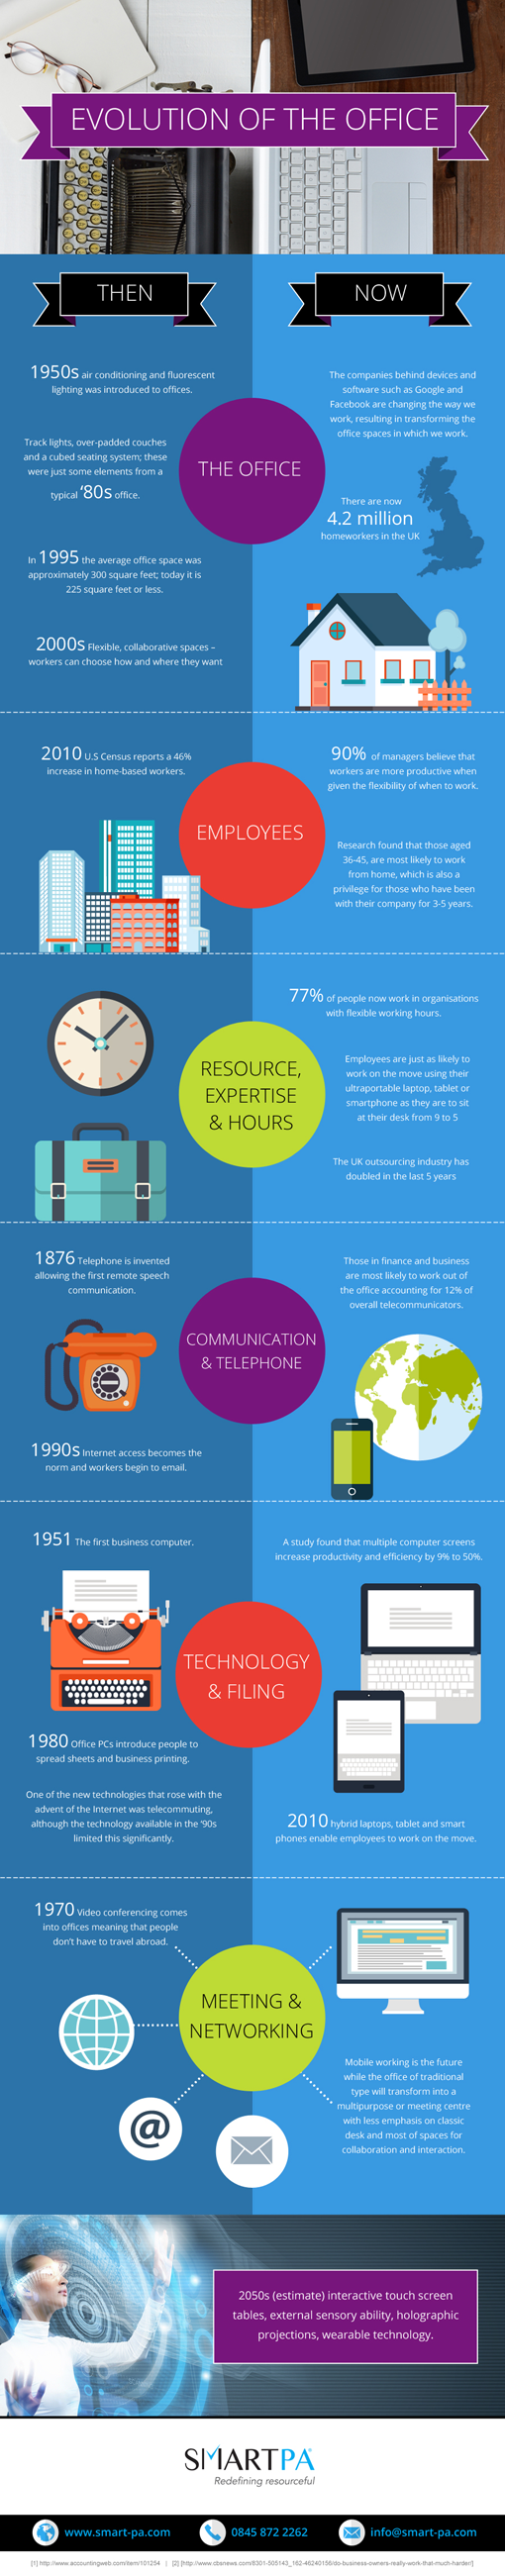 SmartPA-Infographic---Evolution-of-the-Office.png